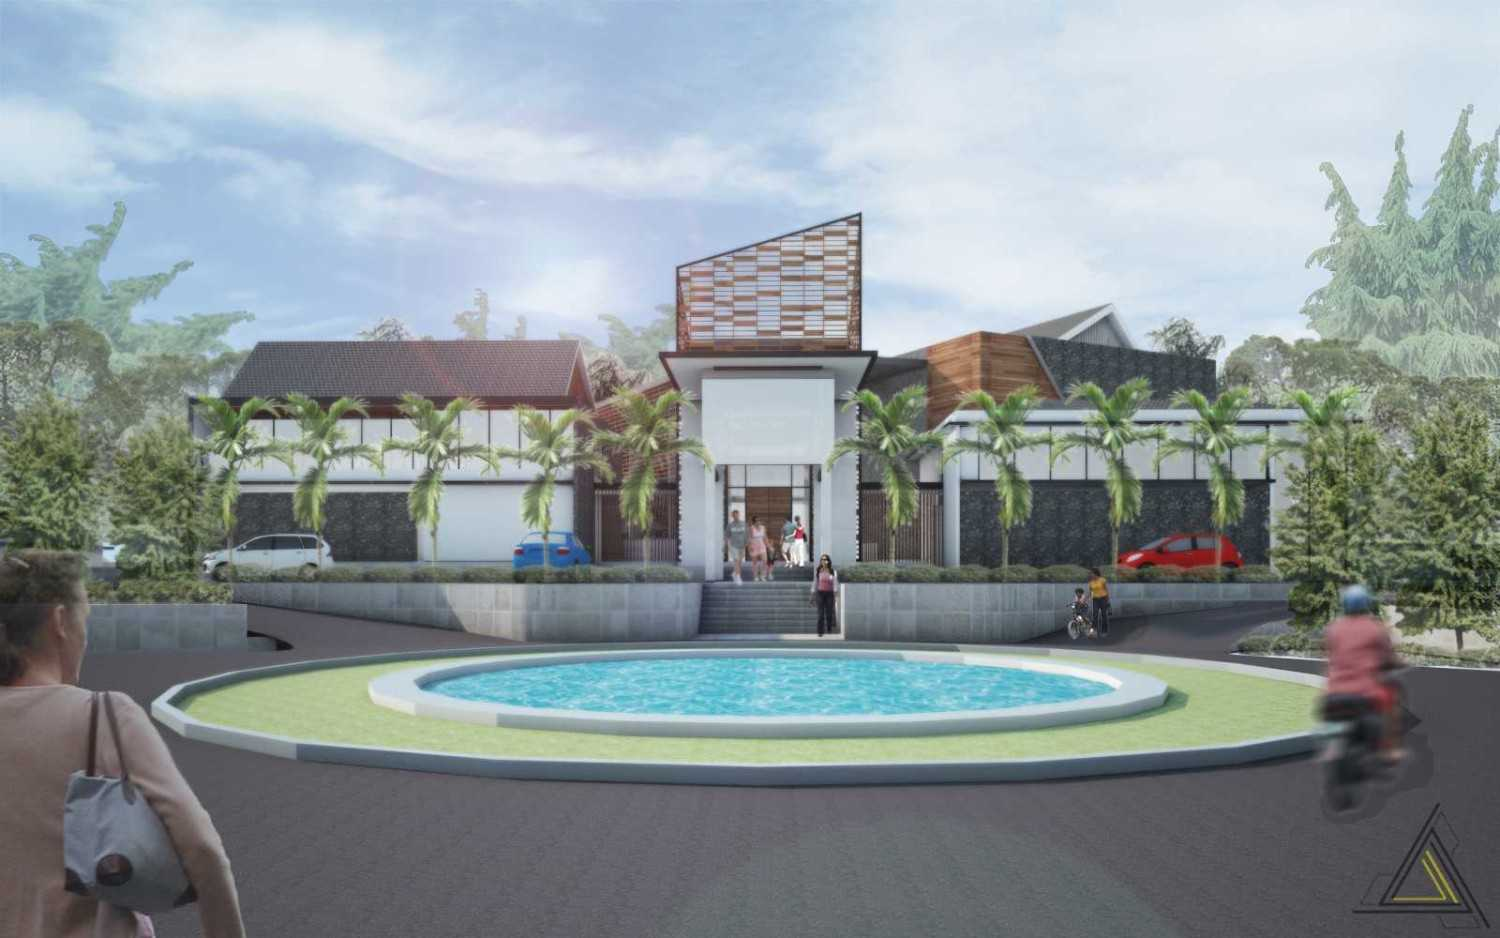 Jasa Design and Build DAP Studio di Bandung